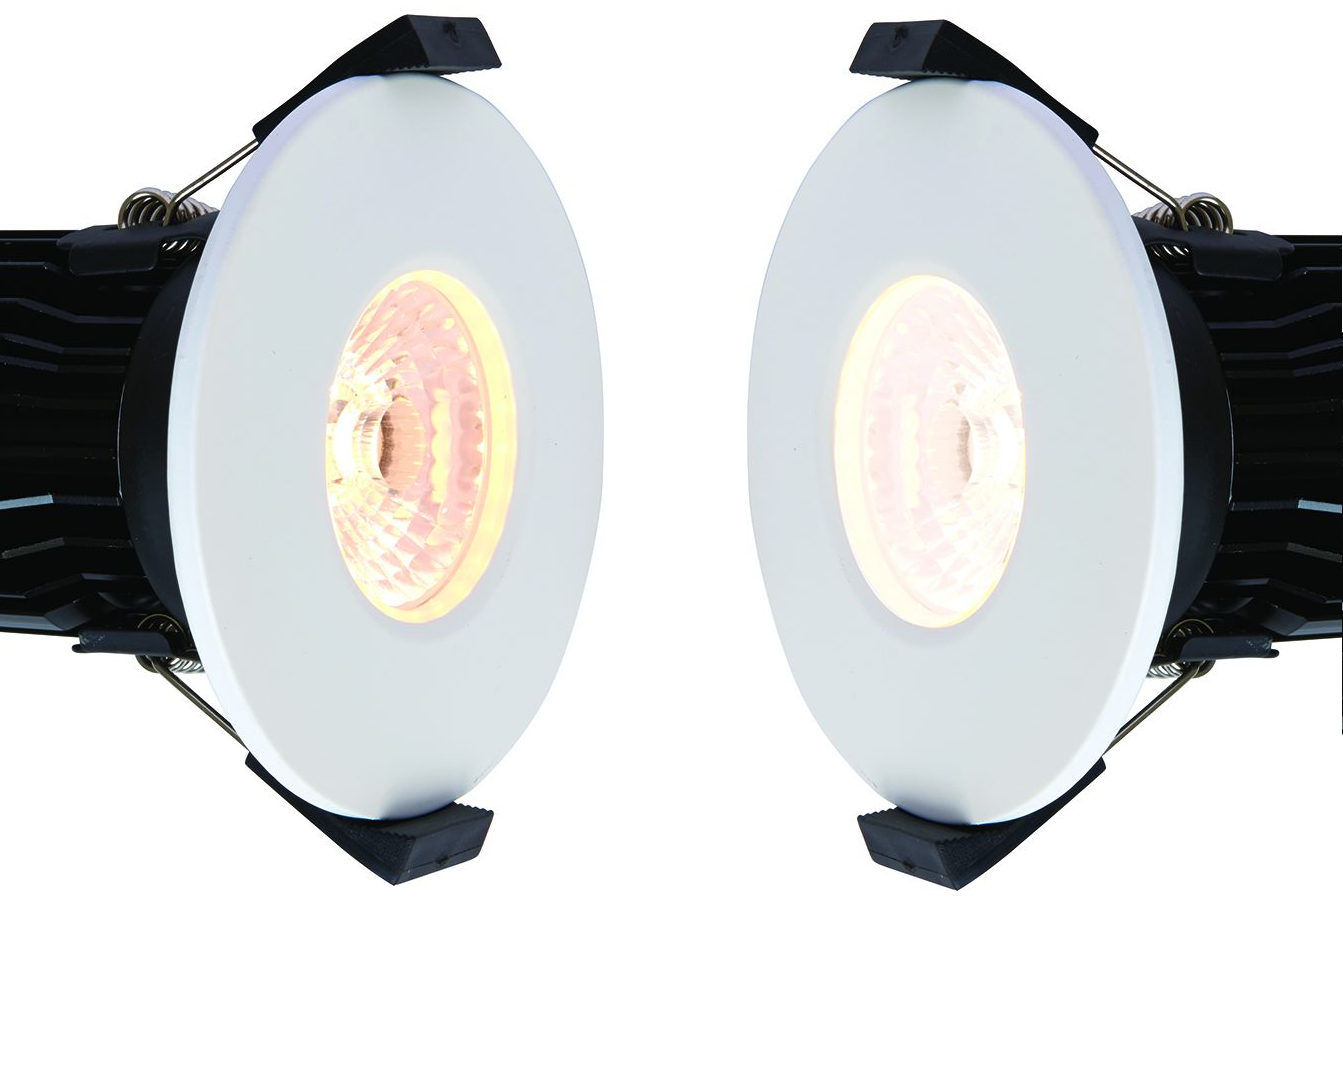 EON Plus LED Fire Rated Downlight range